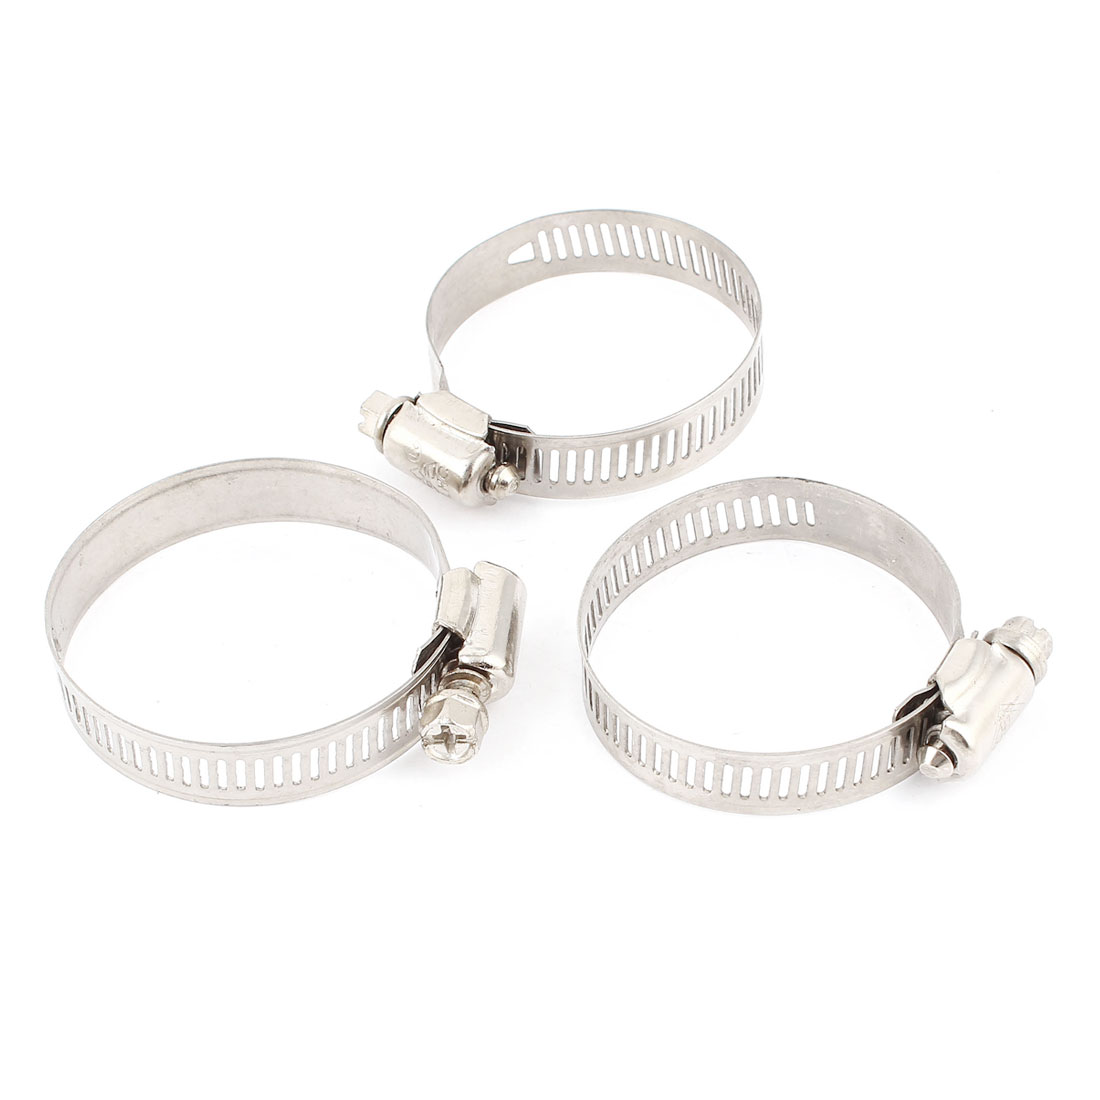 "3 Pcs 27mm to 51mm Adjustable Stainless Steel Band Turbo Hose Clamp 2"" Dia"